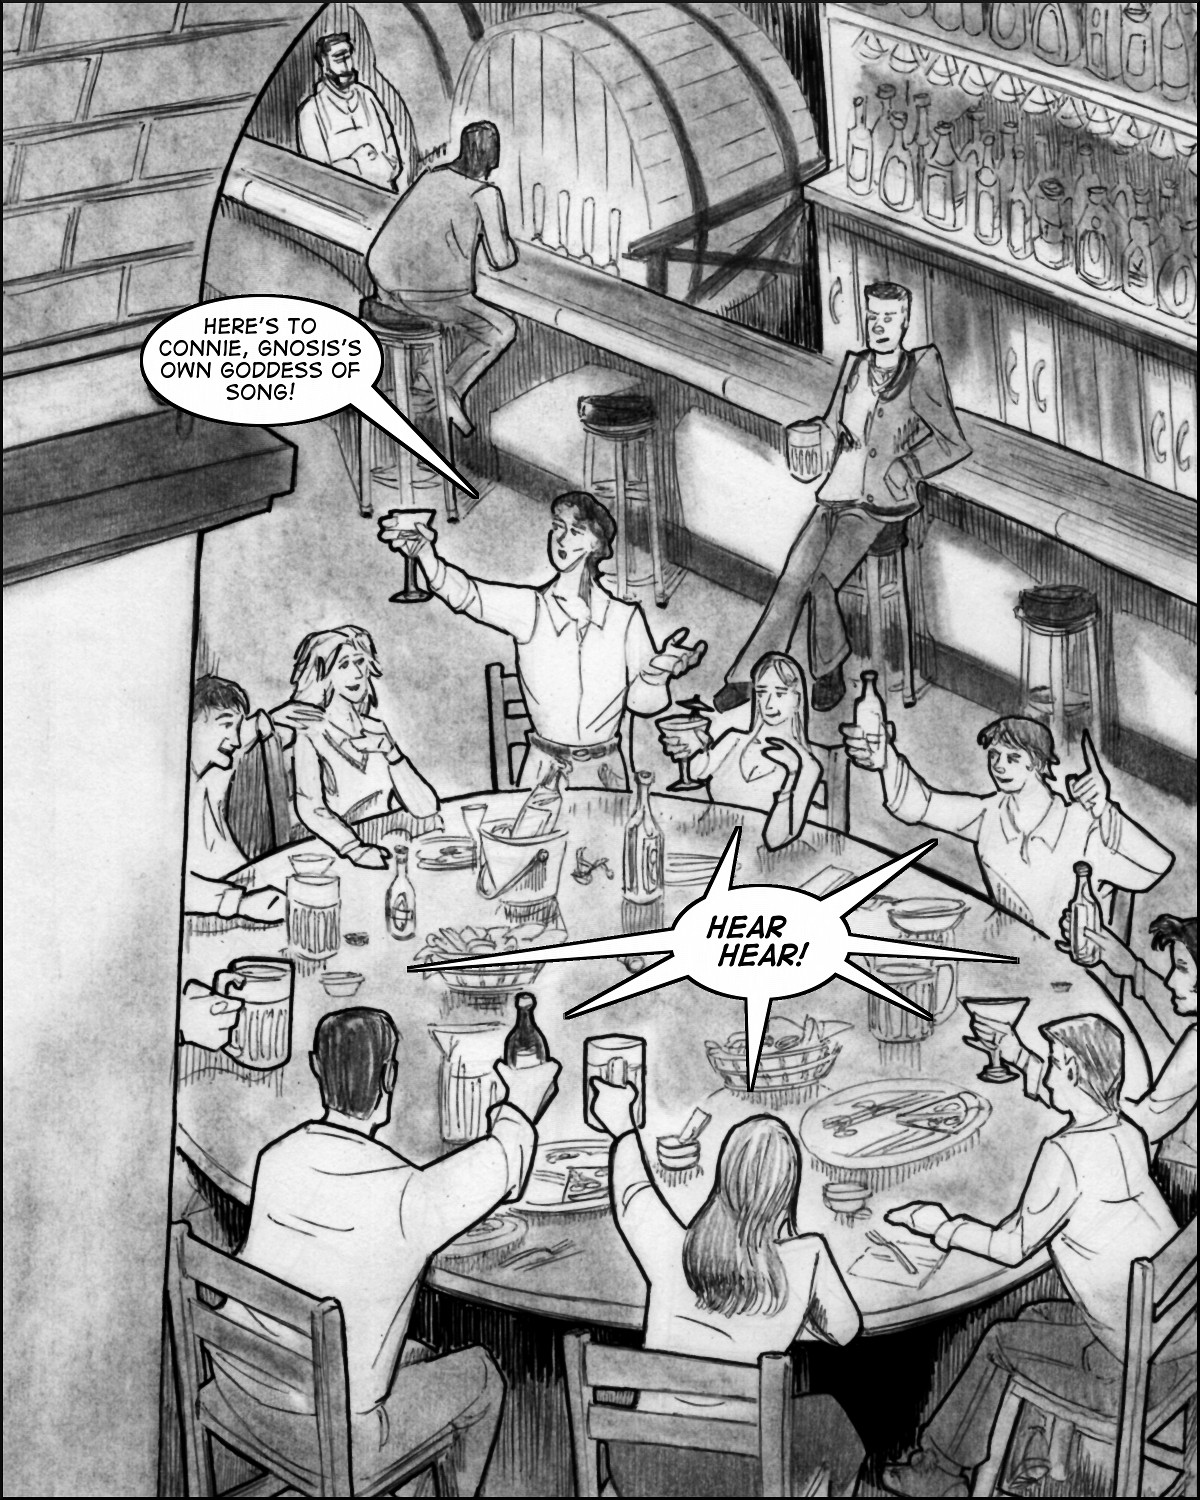 A toast in the student pub.